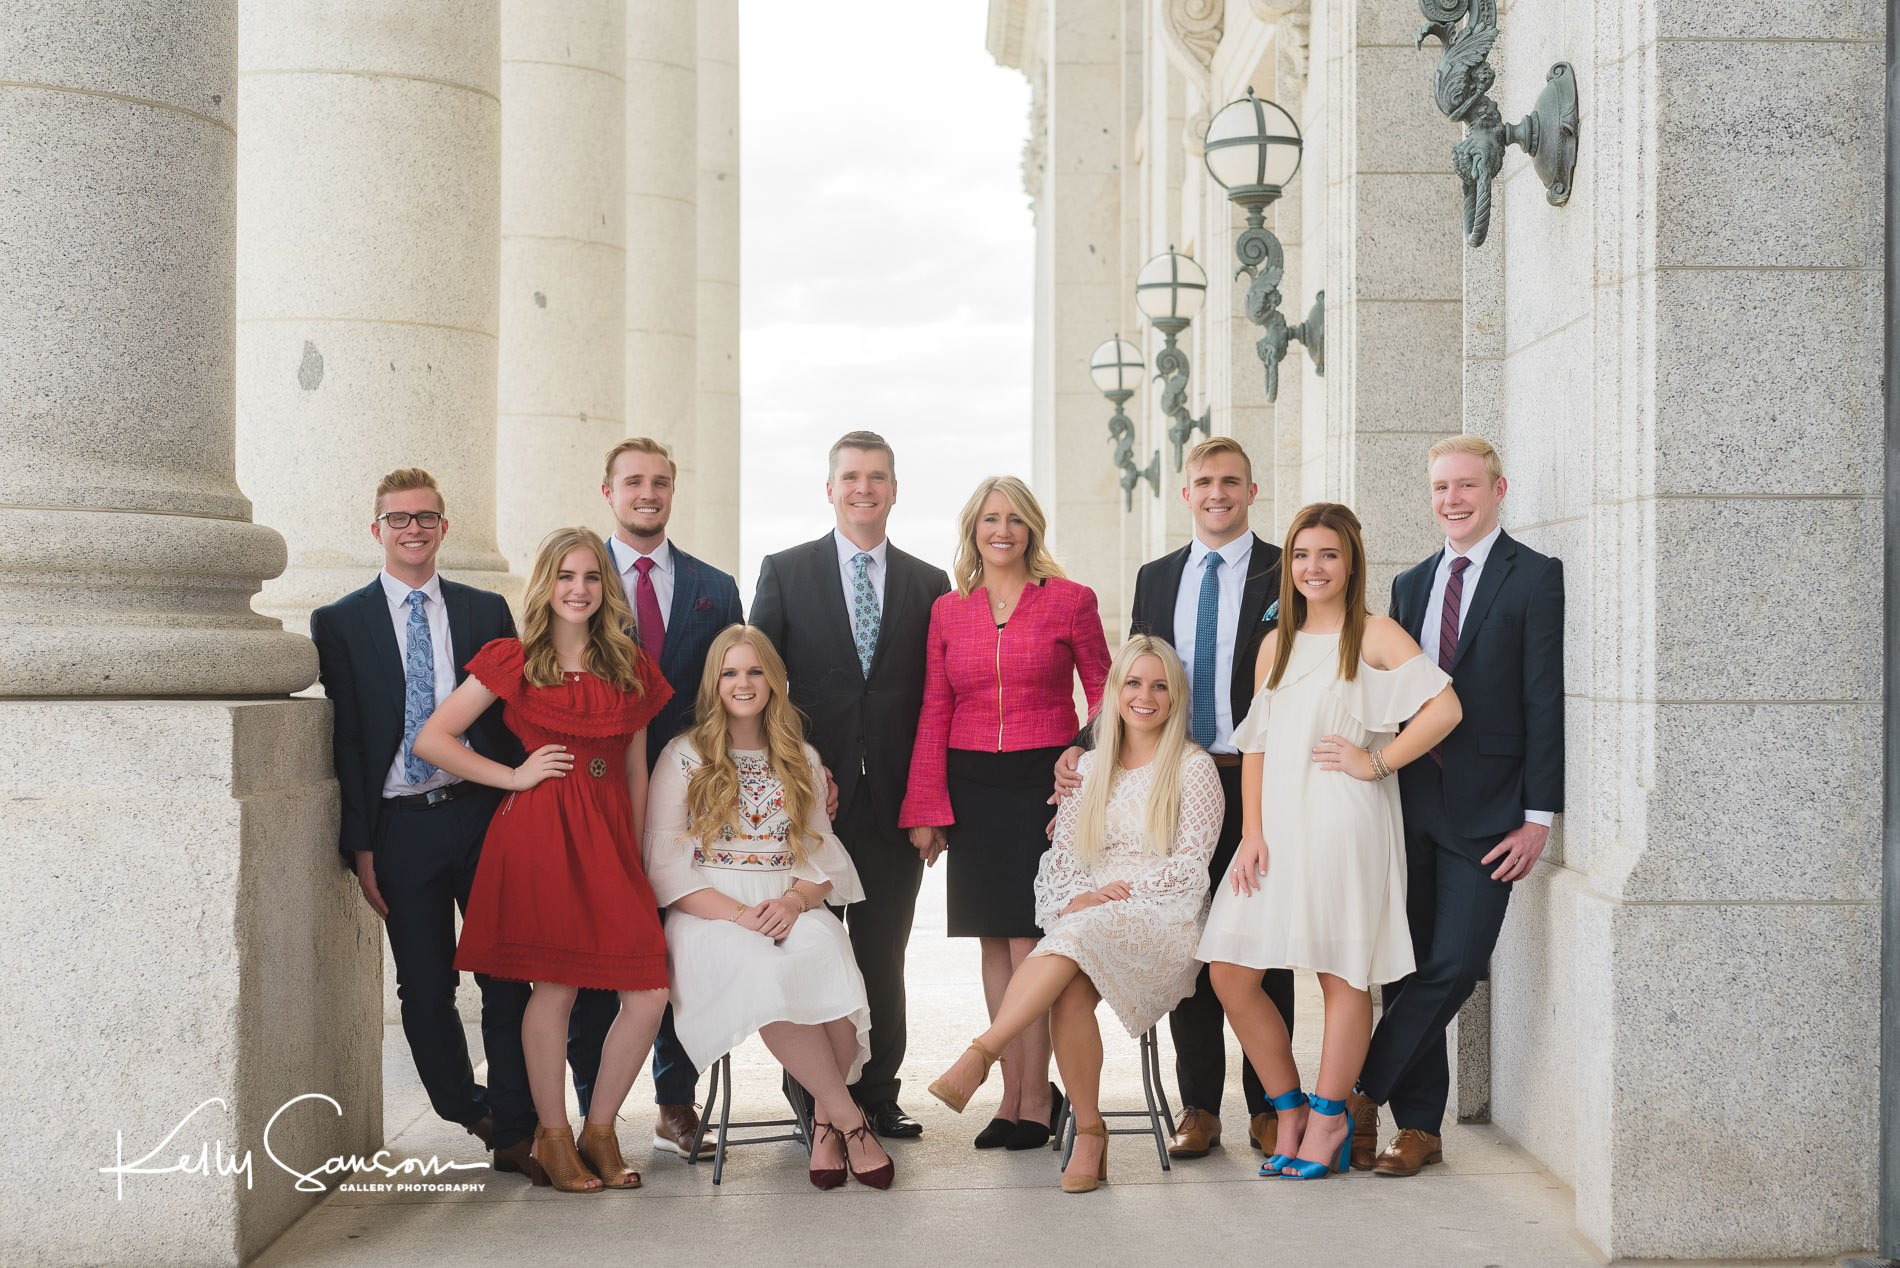 A family dressed formally for family photography at the utah state capitol